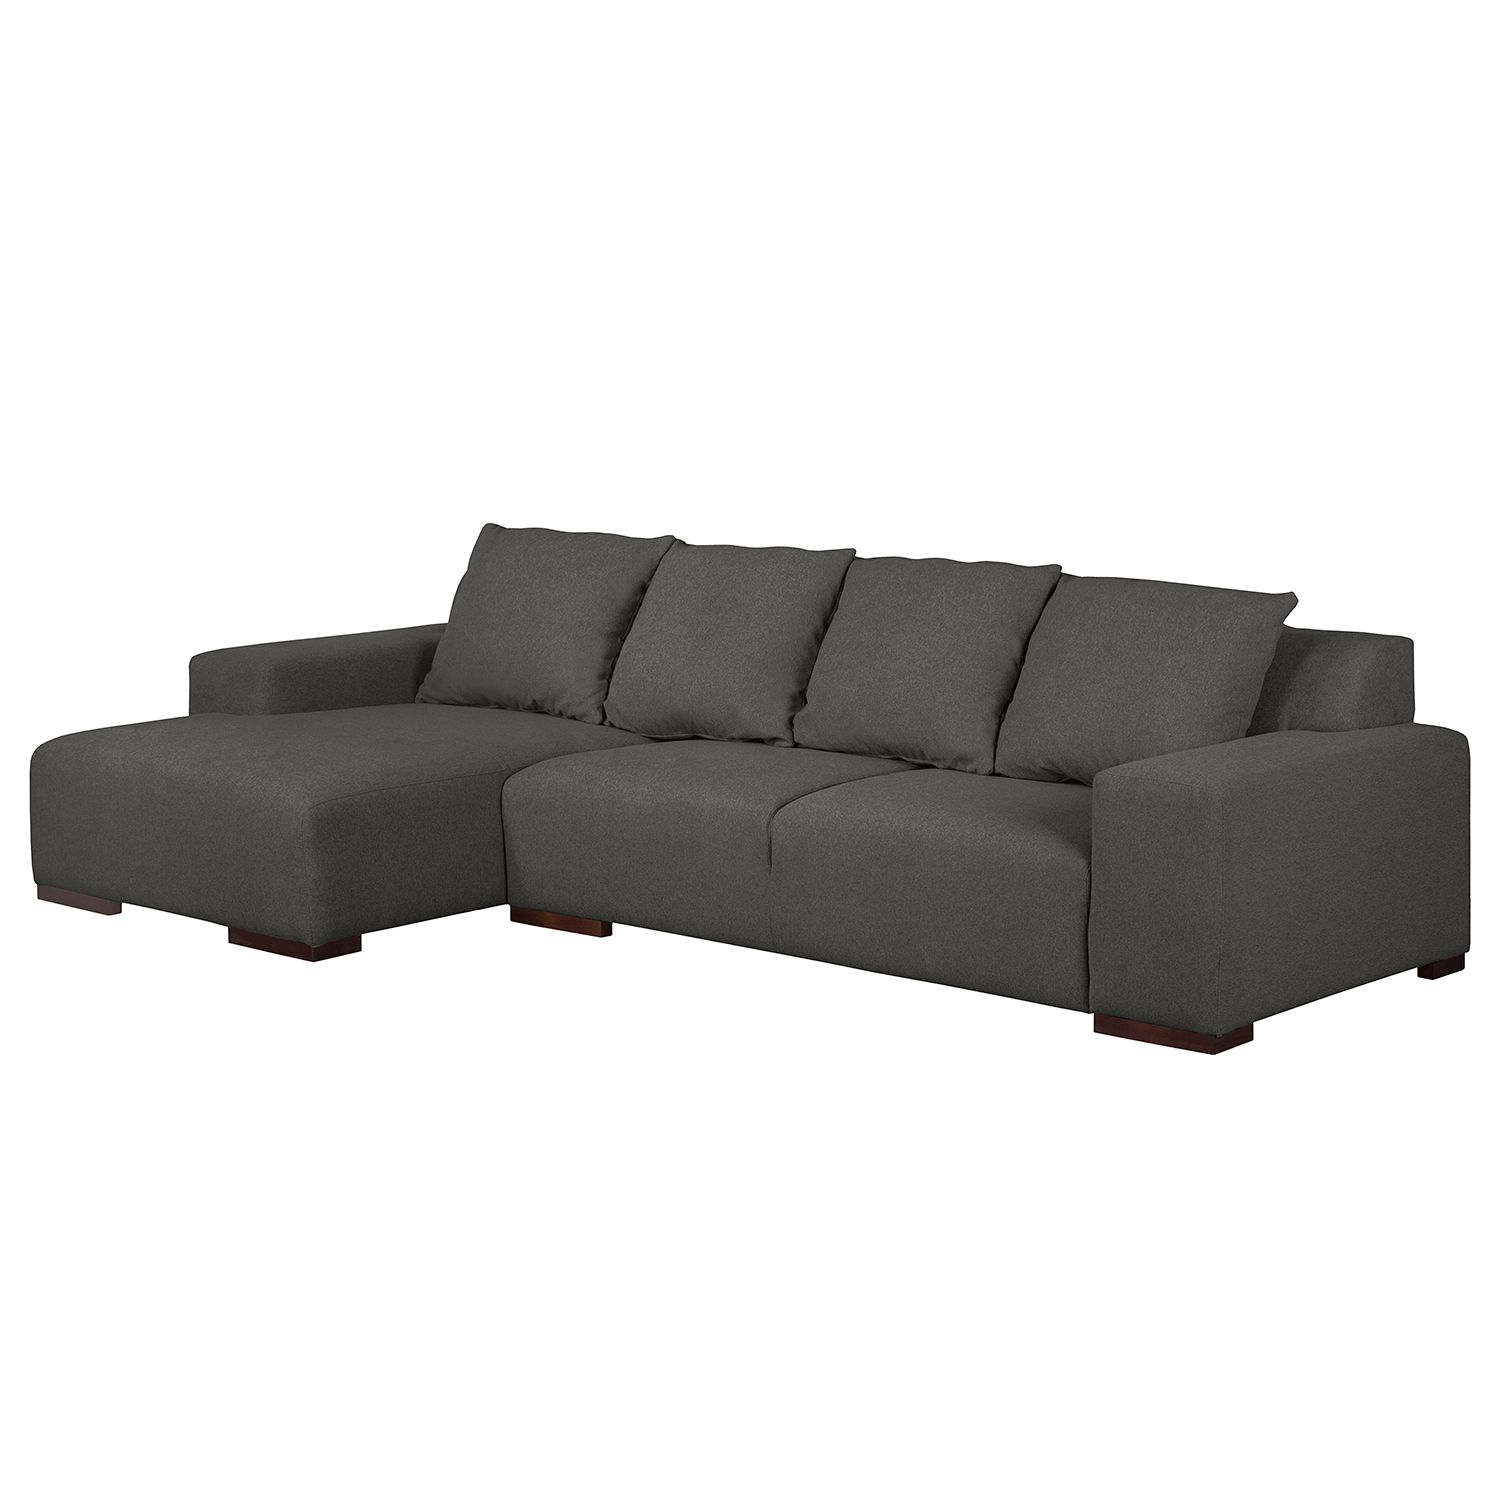 Ecksofa Arrimal I - Webstoff - Longchair/Ottomane davorstehend links - Anthrazit, roomscape